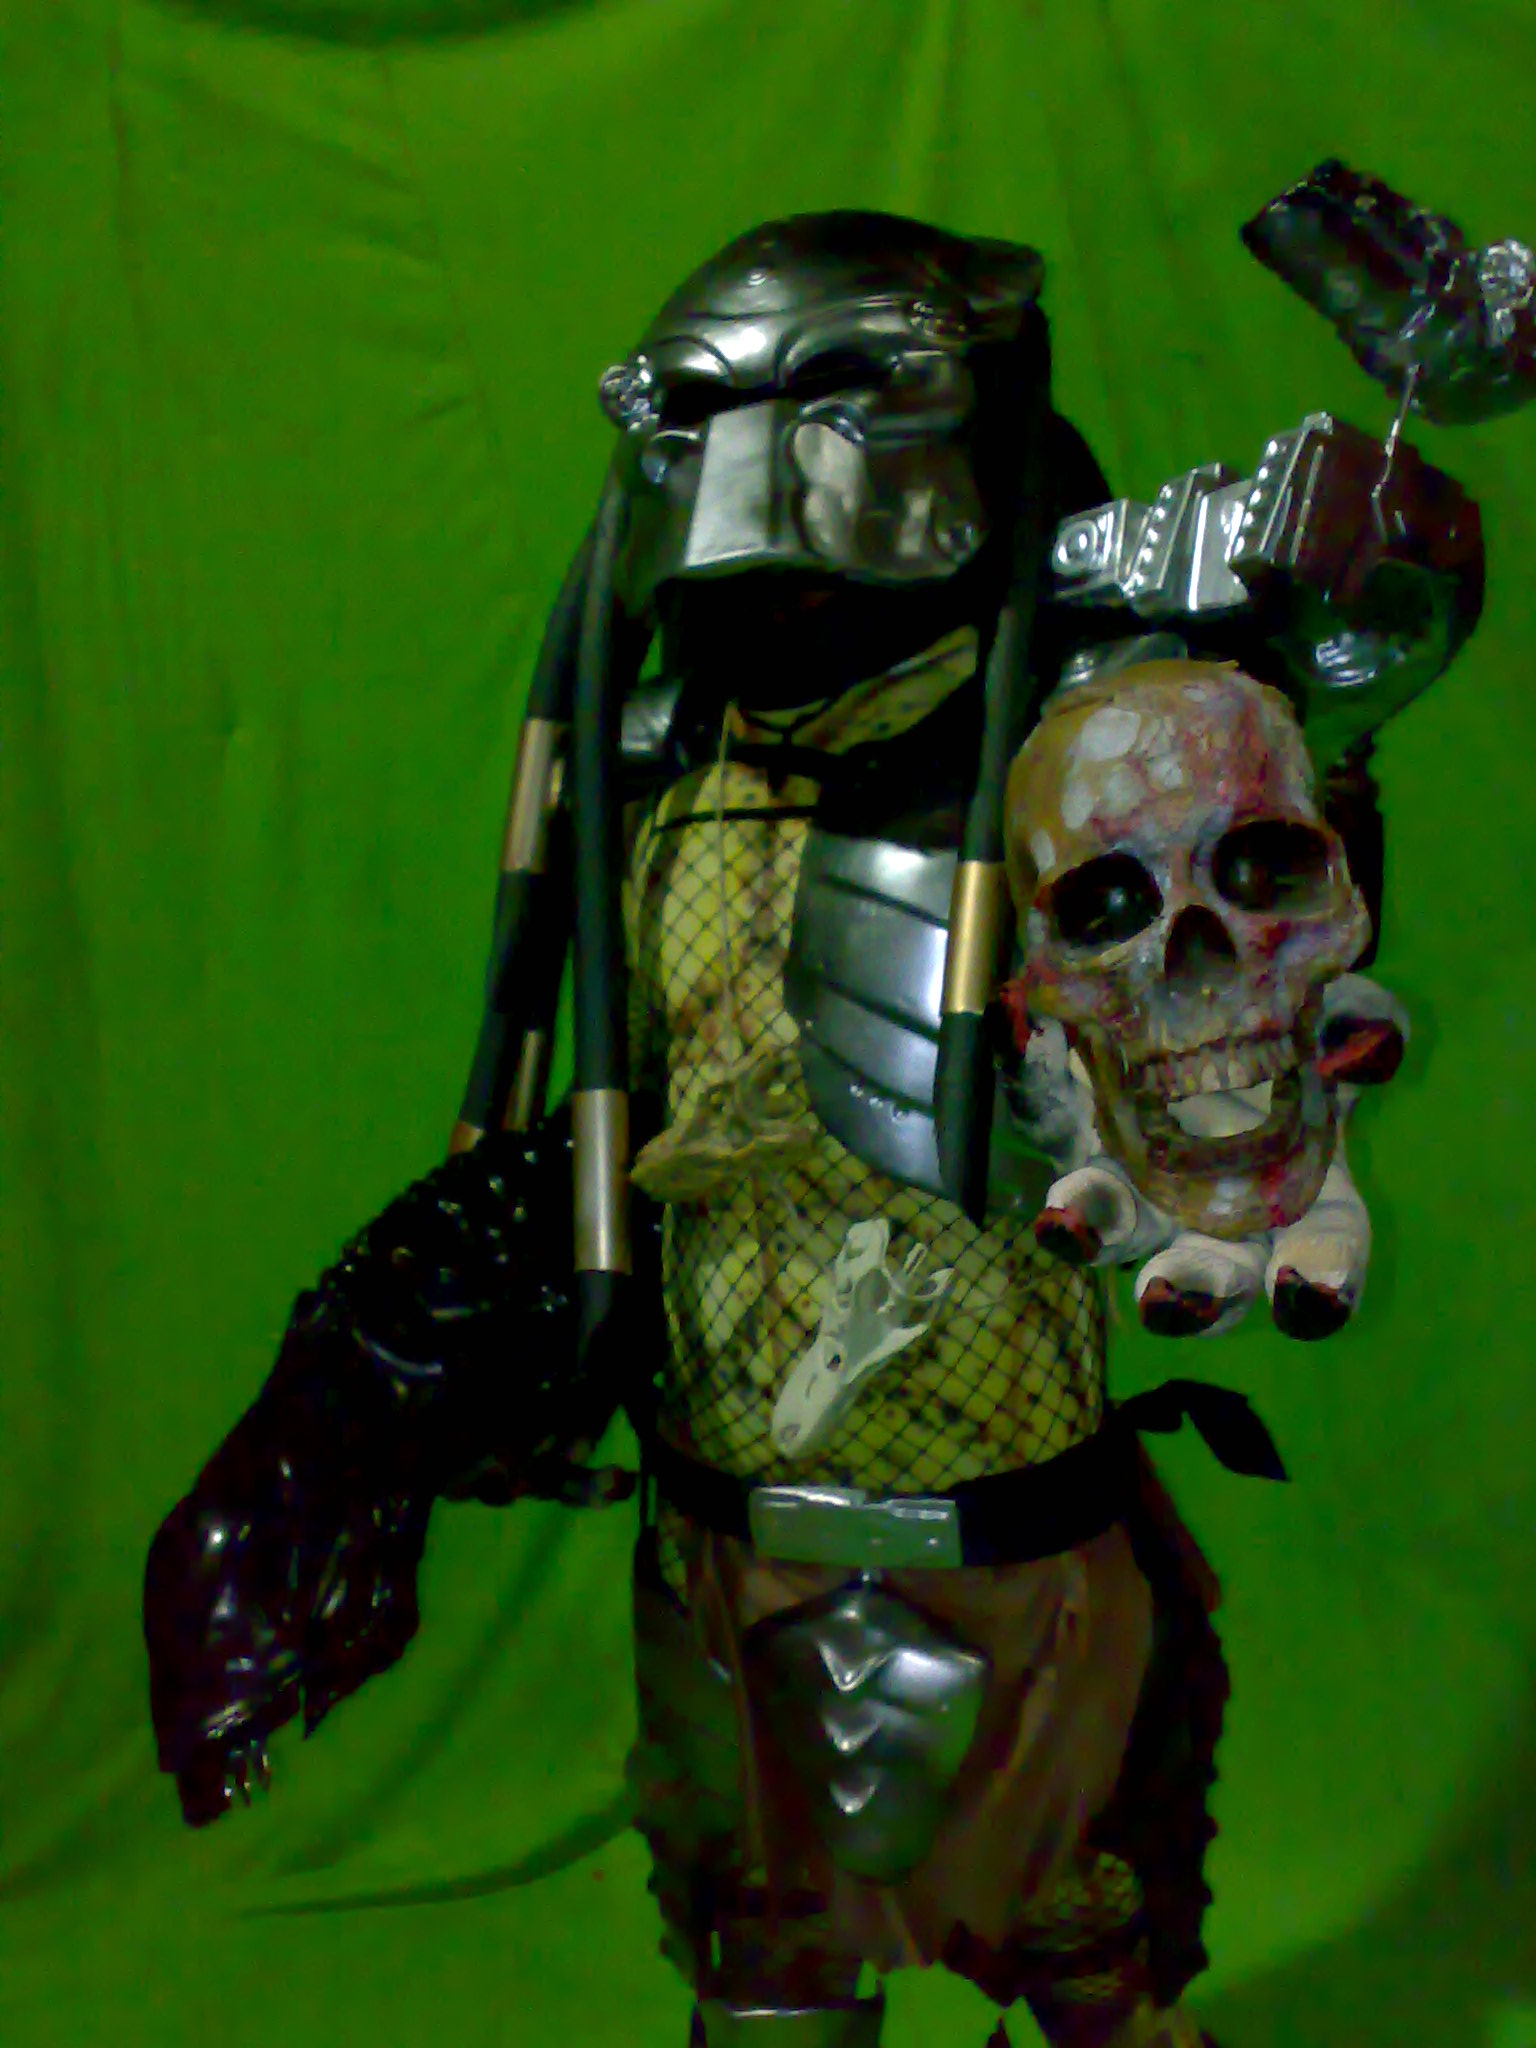 predator costume by FRANKASTER1987 on DeviantArt